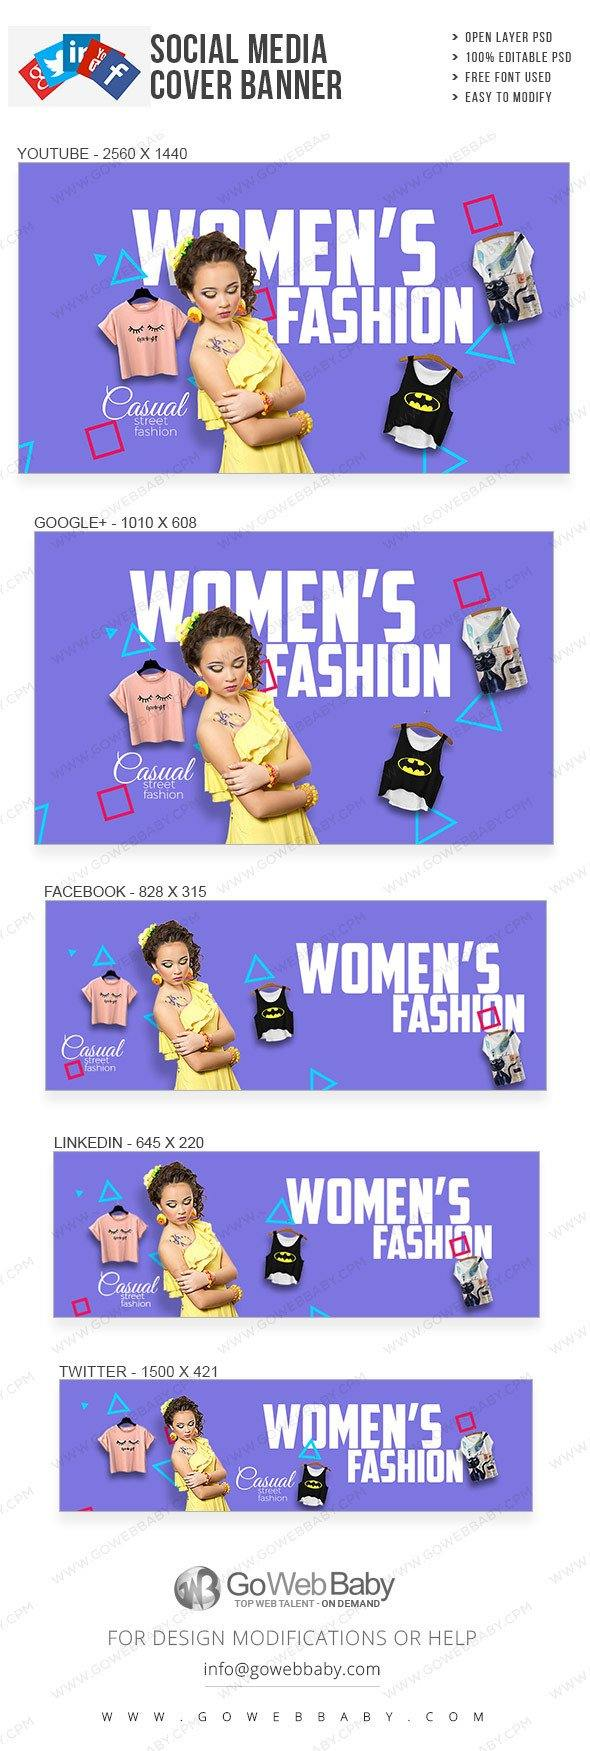 Social Media Cover Banner - Women's Trends For Website Marketing